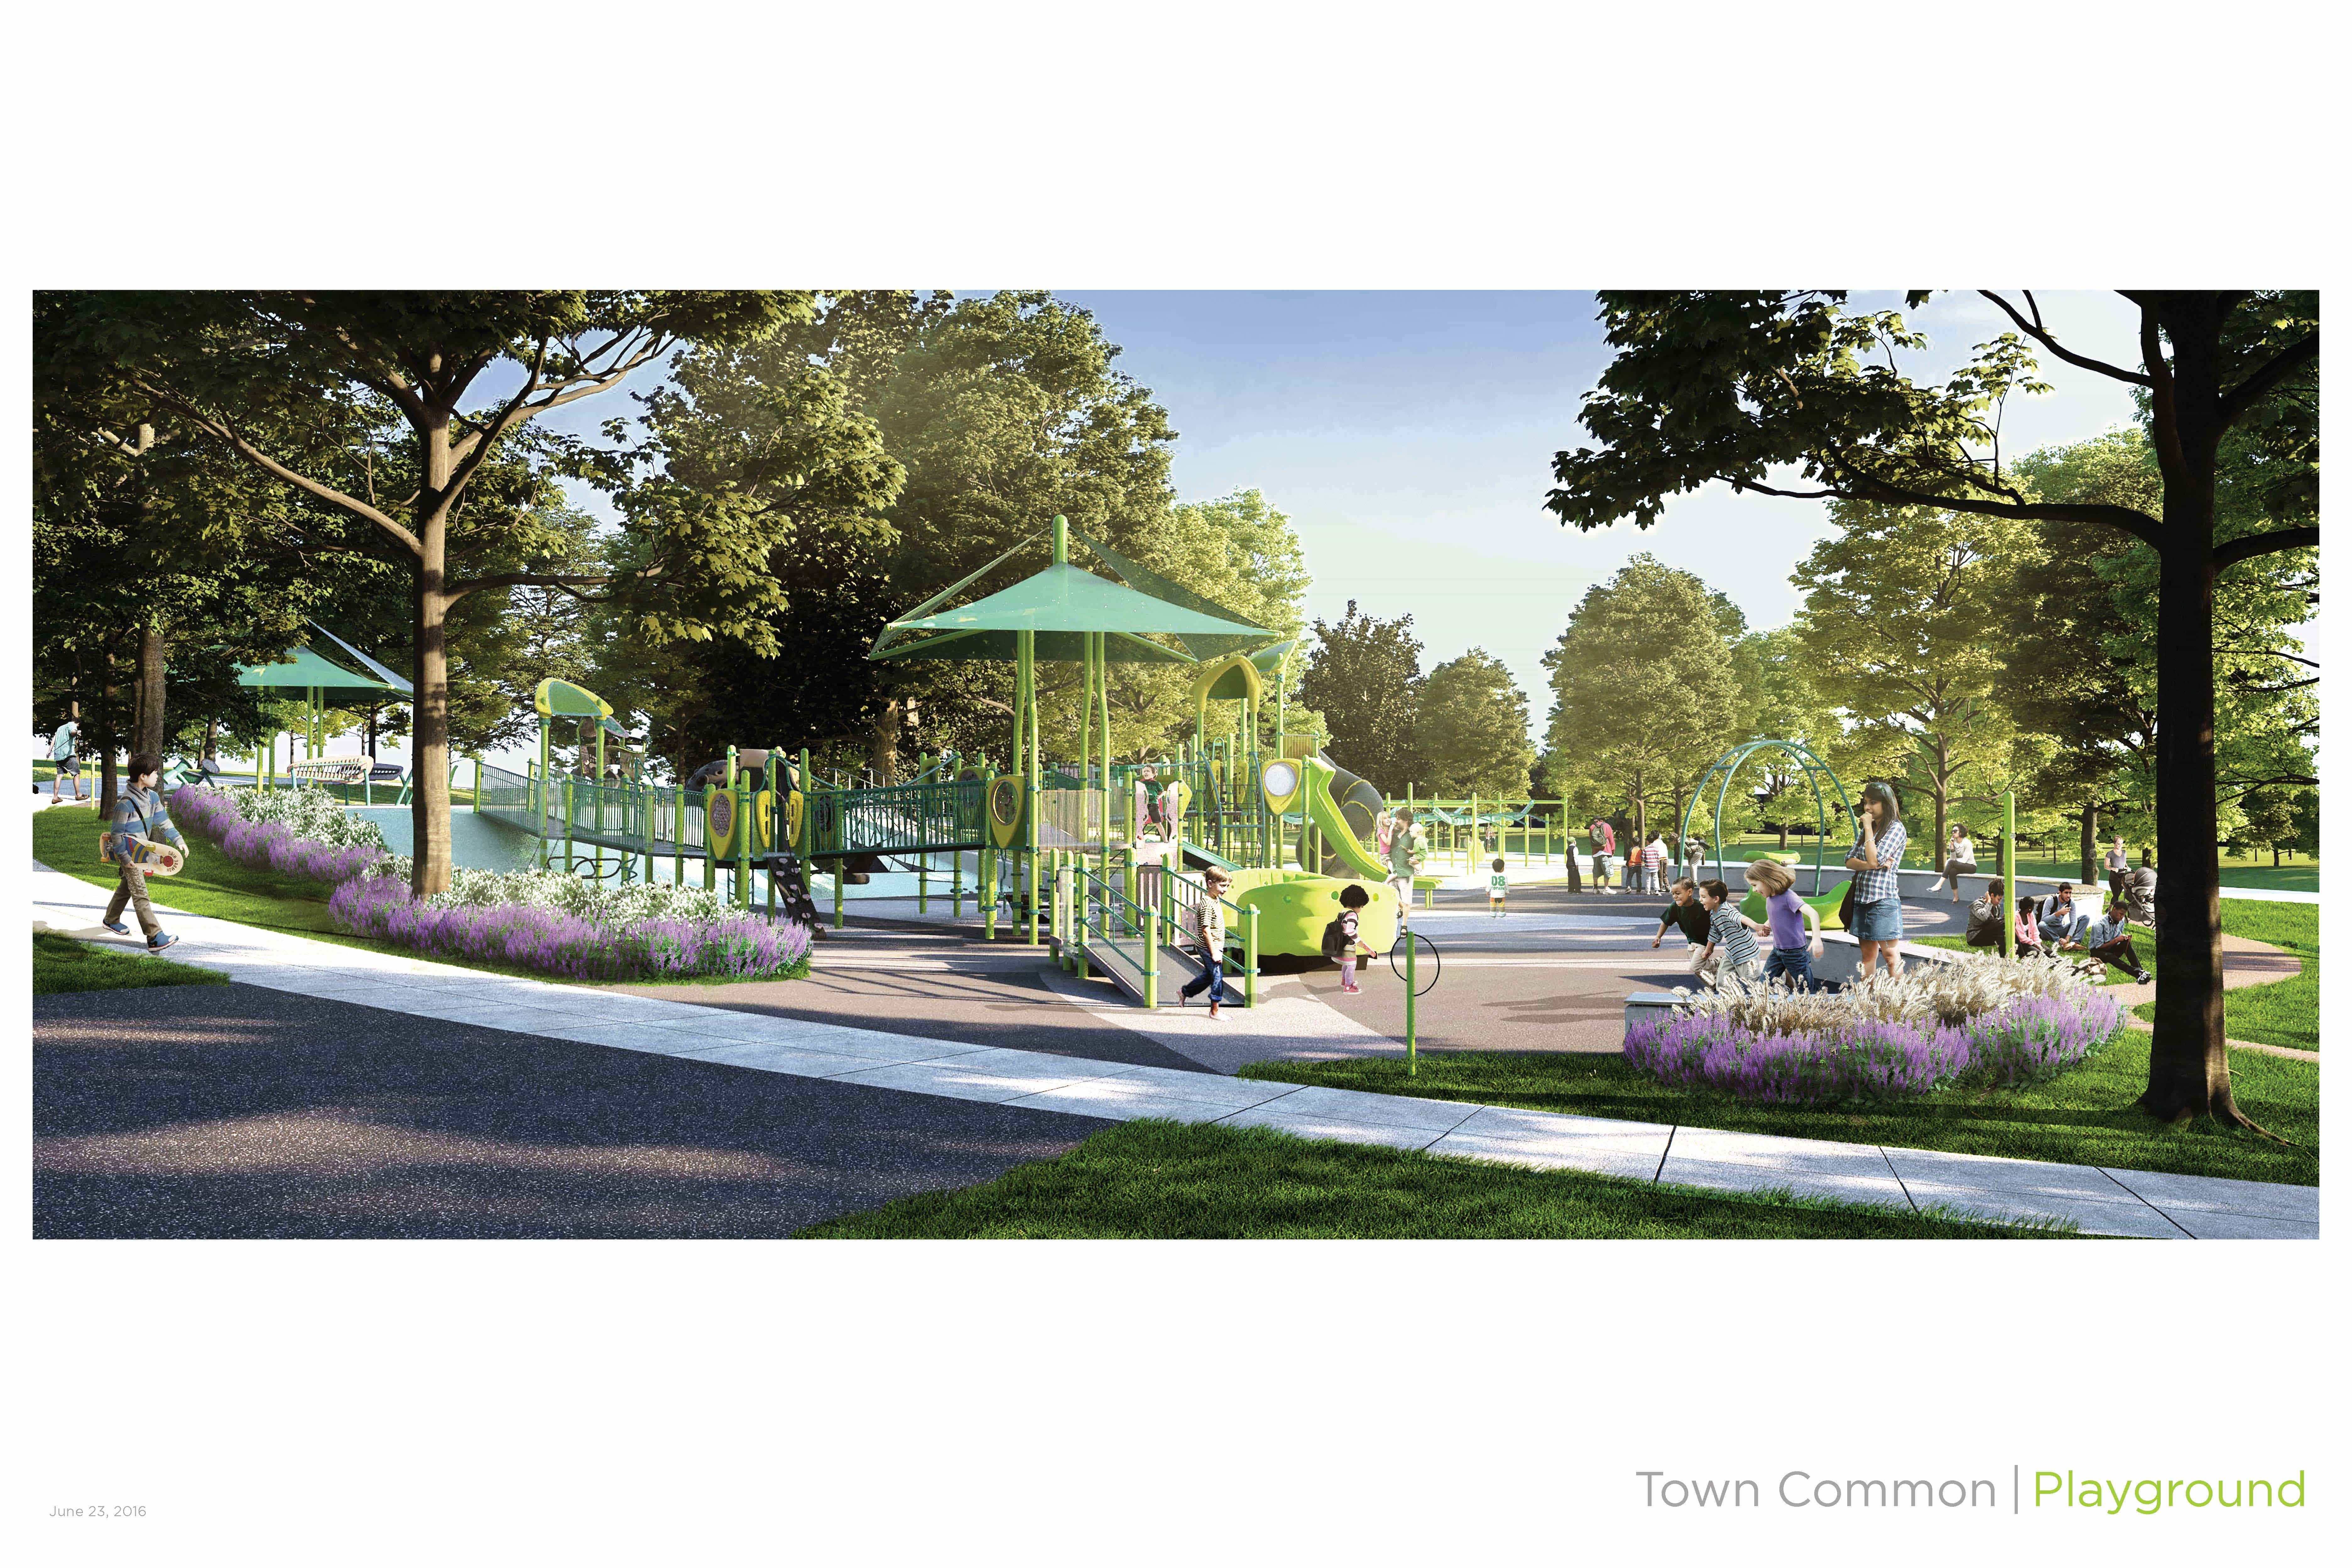 New Inclusive Playground ing soon to Town mon Playground in